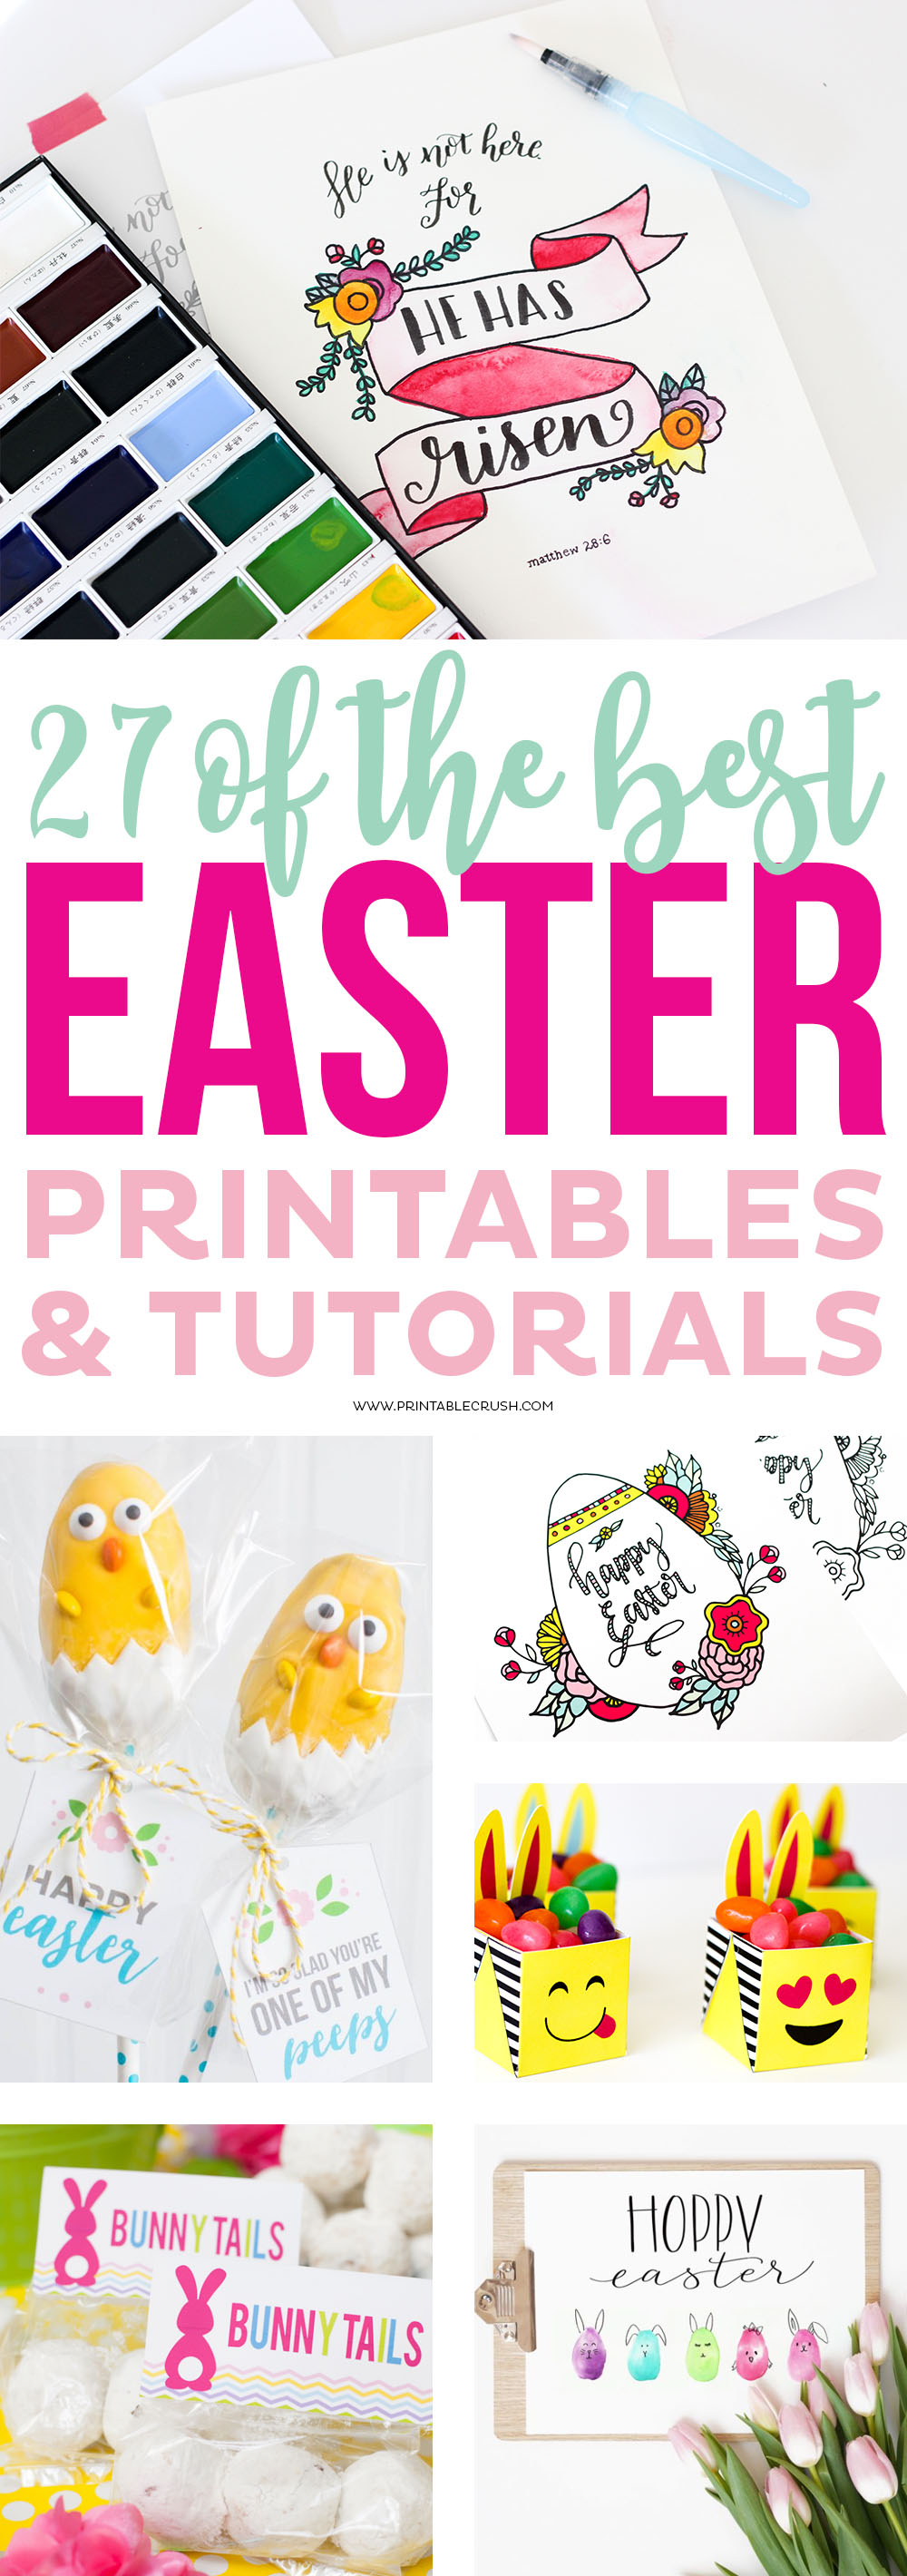 Check out 27 of the BEST Easter Printables and Tutorials to help you get started planning for Easter! Includes everything you need from place settings to Easter Hand Lettering worksheets!